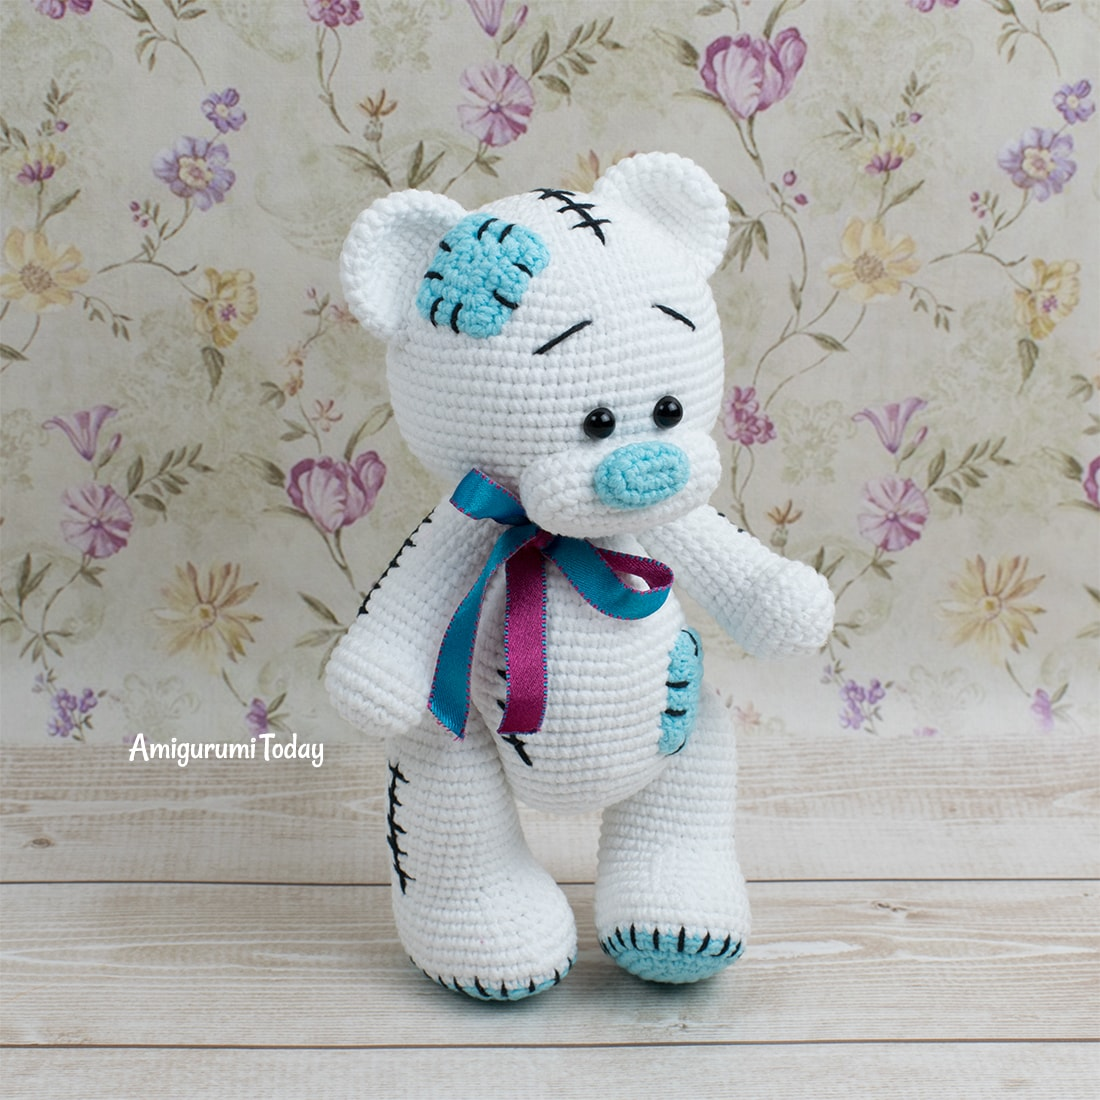 Amigurumi Teddy Bear - FREE Crochet Pattern / Tutorial | Crochet ... | 1100x1100